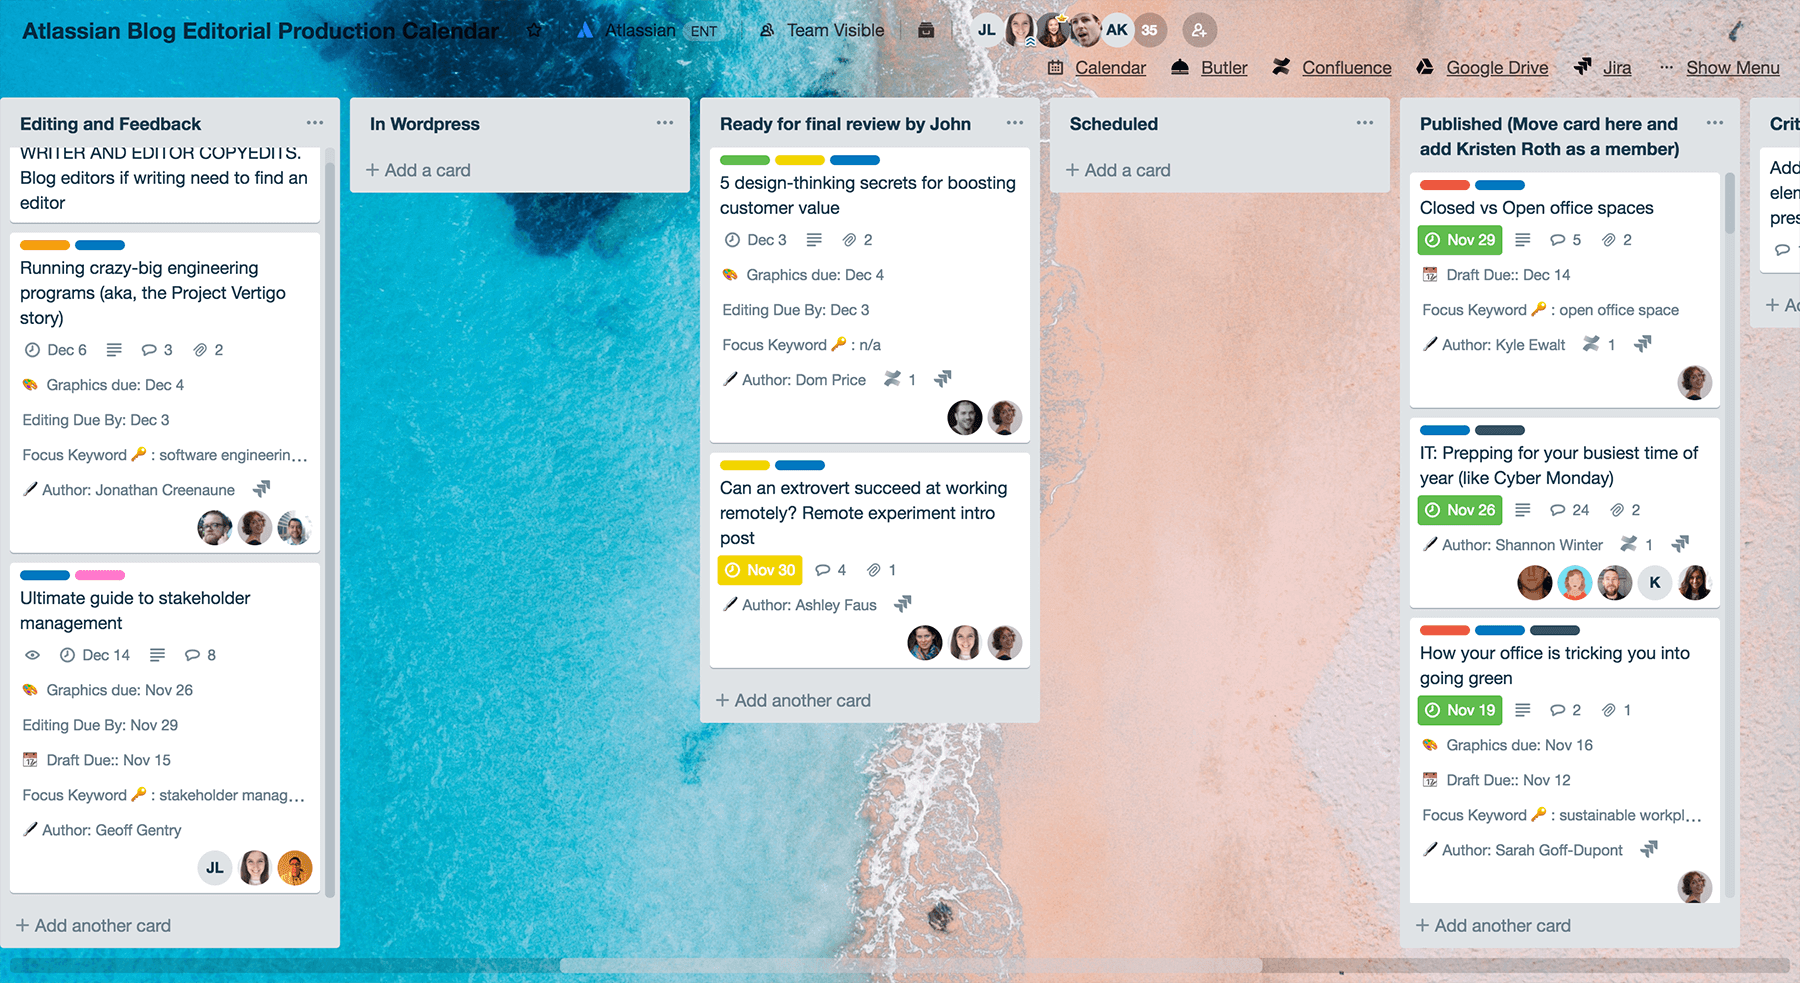 Trello board with cards on keeping up to date